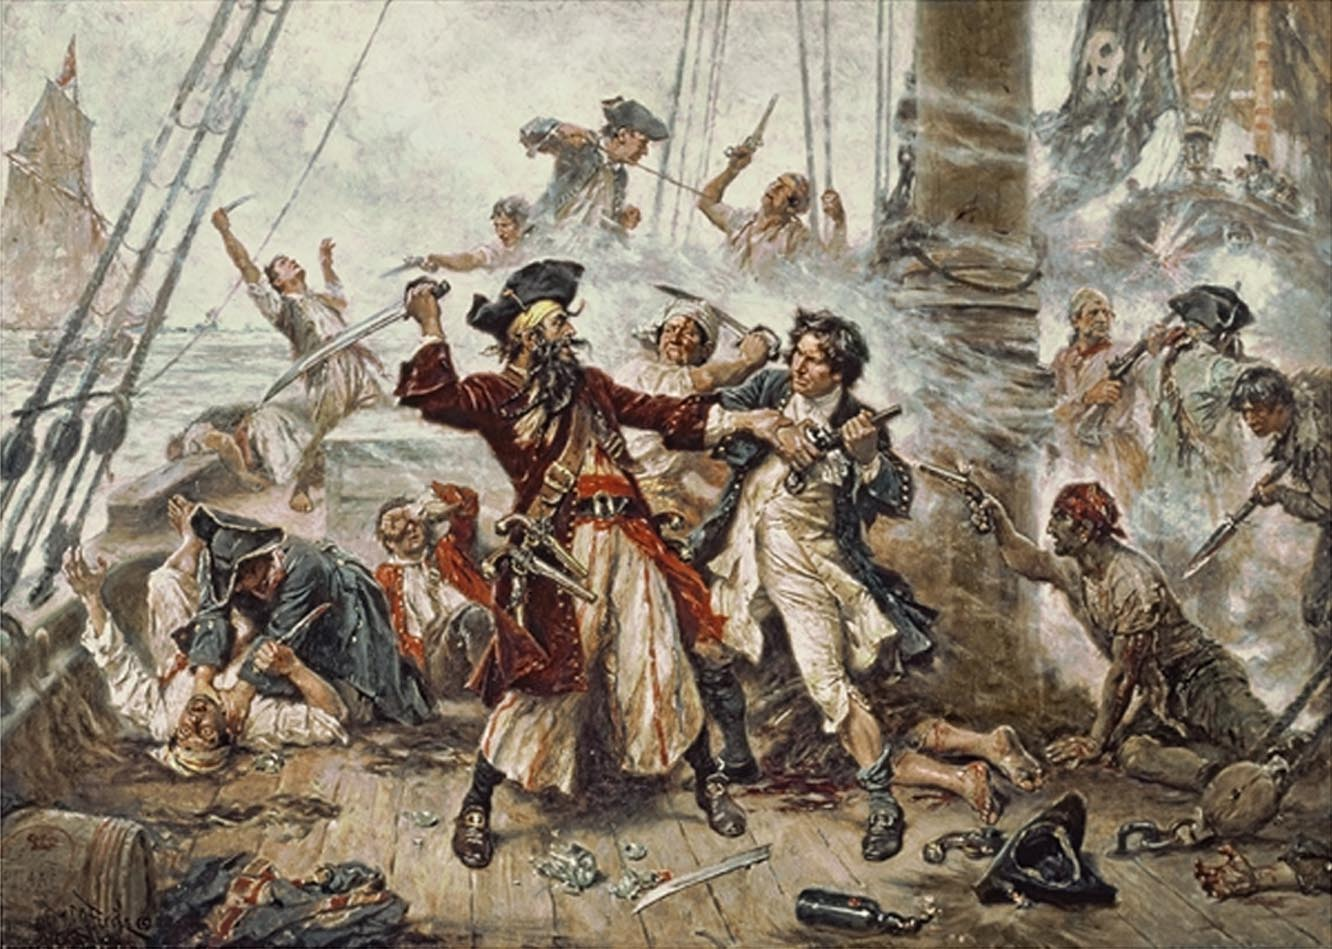 https://i0.wp.com/upload.wikimedia.org/wikipedia/commons/1/12/Capture-of-Blackbeard.jpg